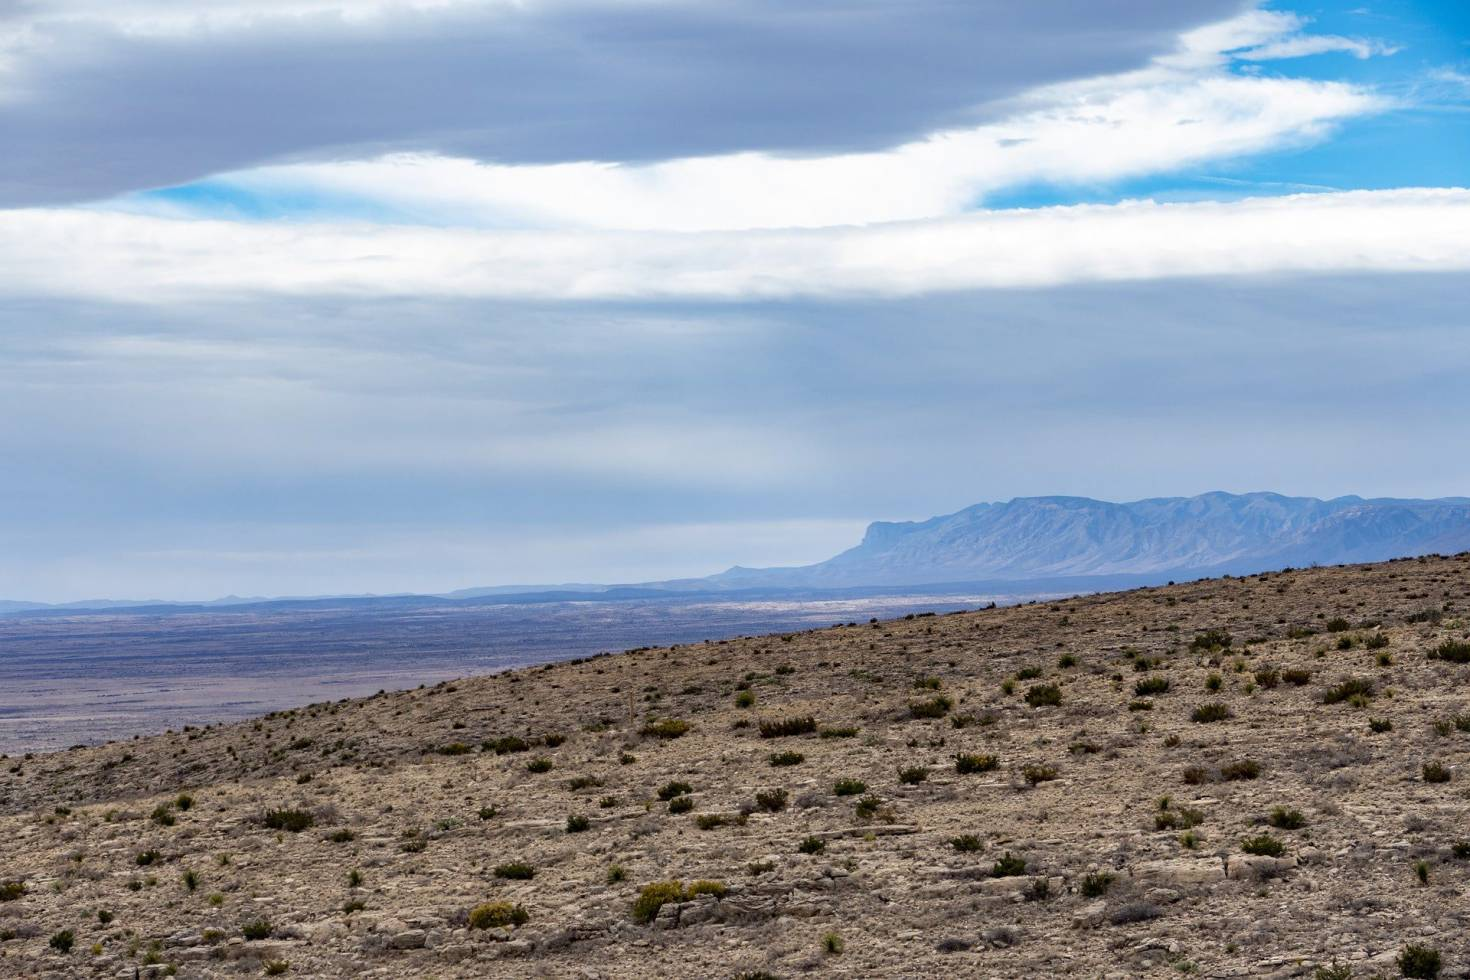 Cheap Land for Sale in New Mexico